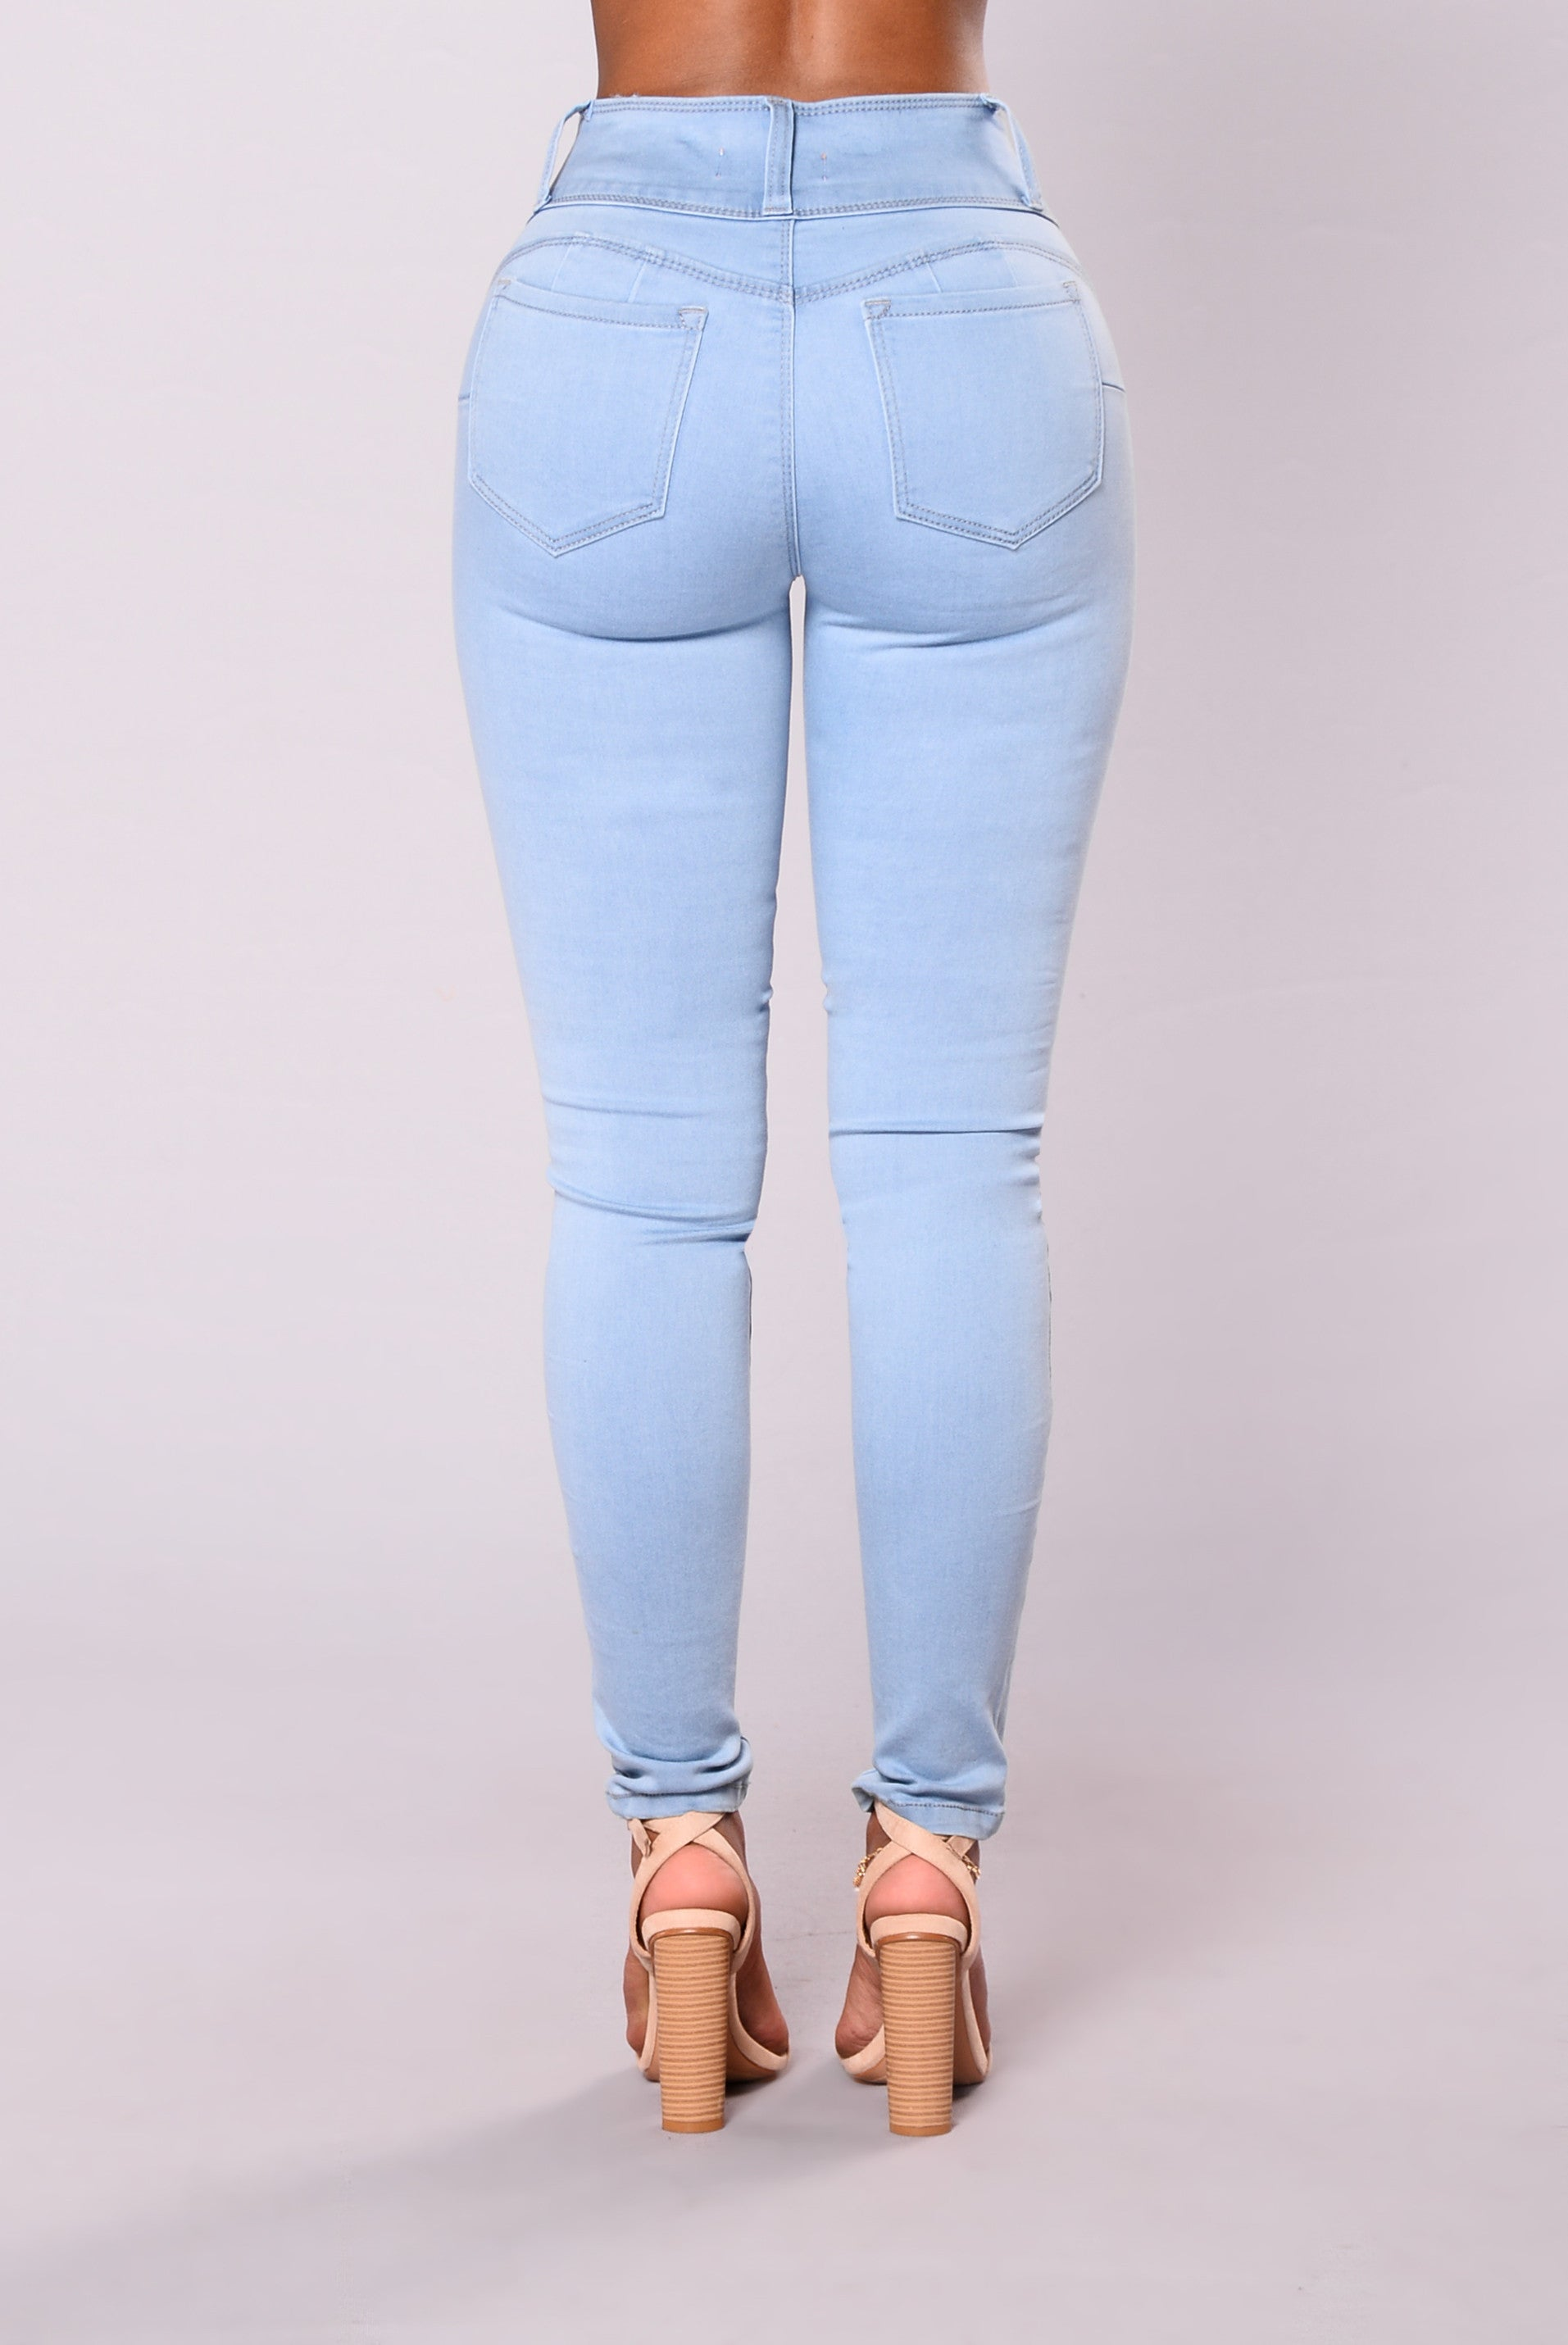 Men's Blue Skinny Jeans Stretch Washed Slim Fit Straight Pencil Pants. from $ 16 99 Prime. out of 5 stars Plaid&Plain. Men's Linen Pants Summer Pants Men's Lightweight Pants $ 19 99 Prime. 3 out of 5 stars 2. Cherokee. Women's Infinity Low-Rise Straight Leg Drawstring Pant. from $ 14 99 Prime.